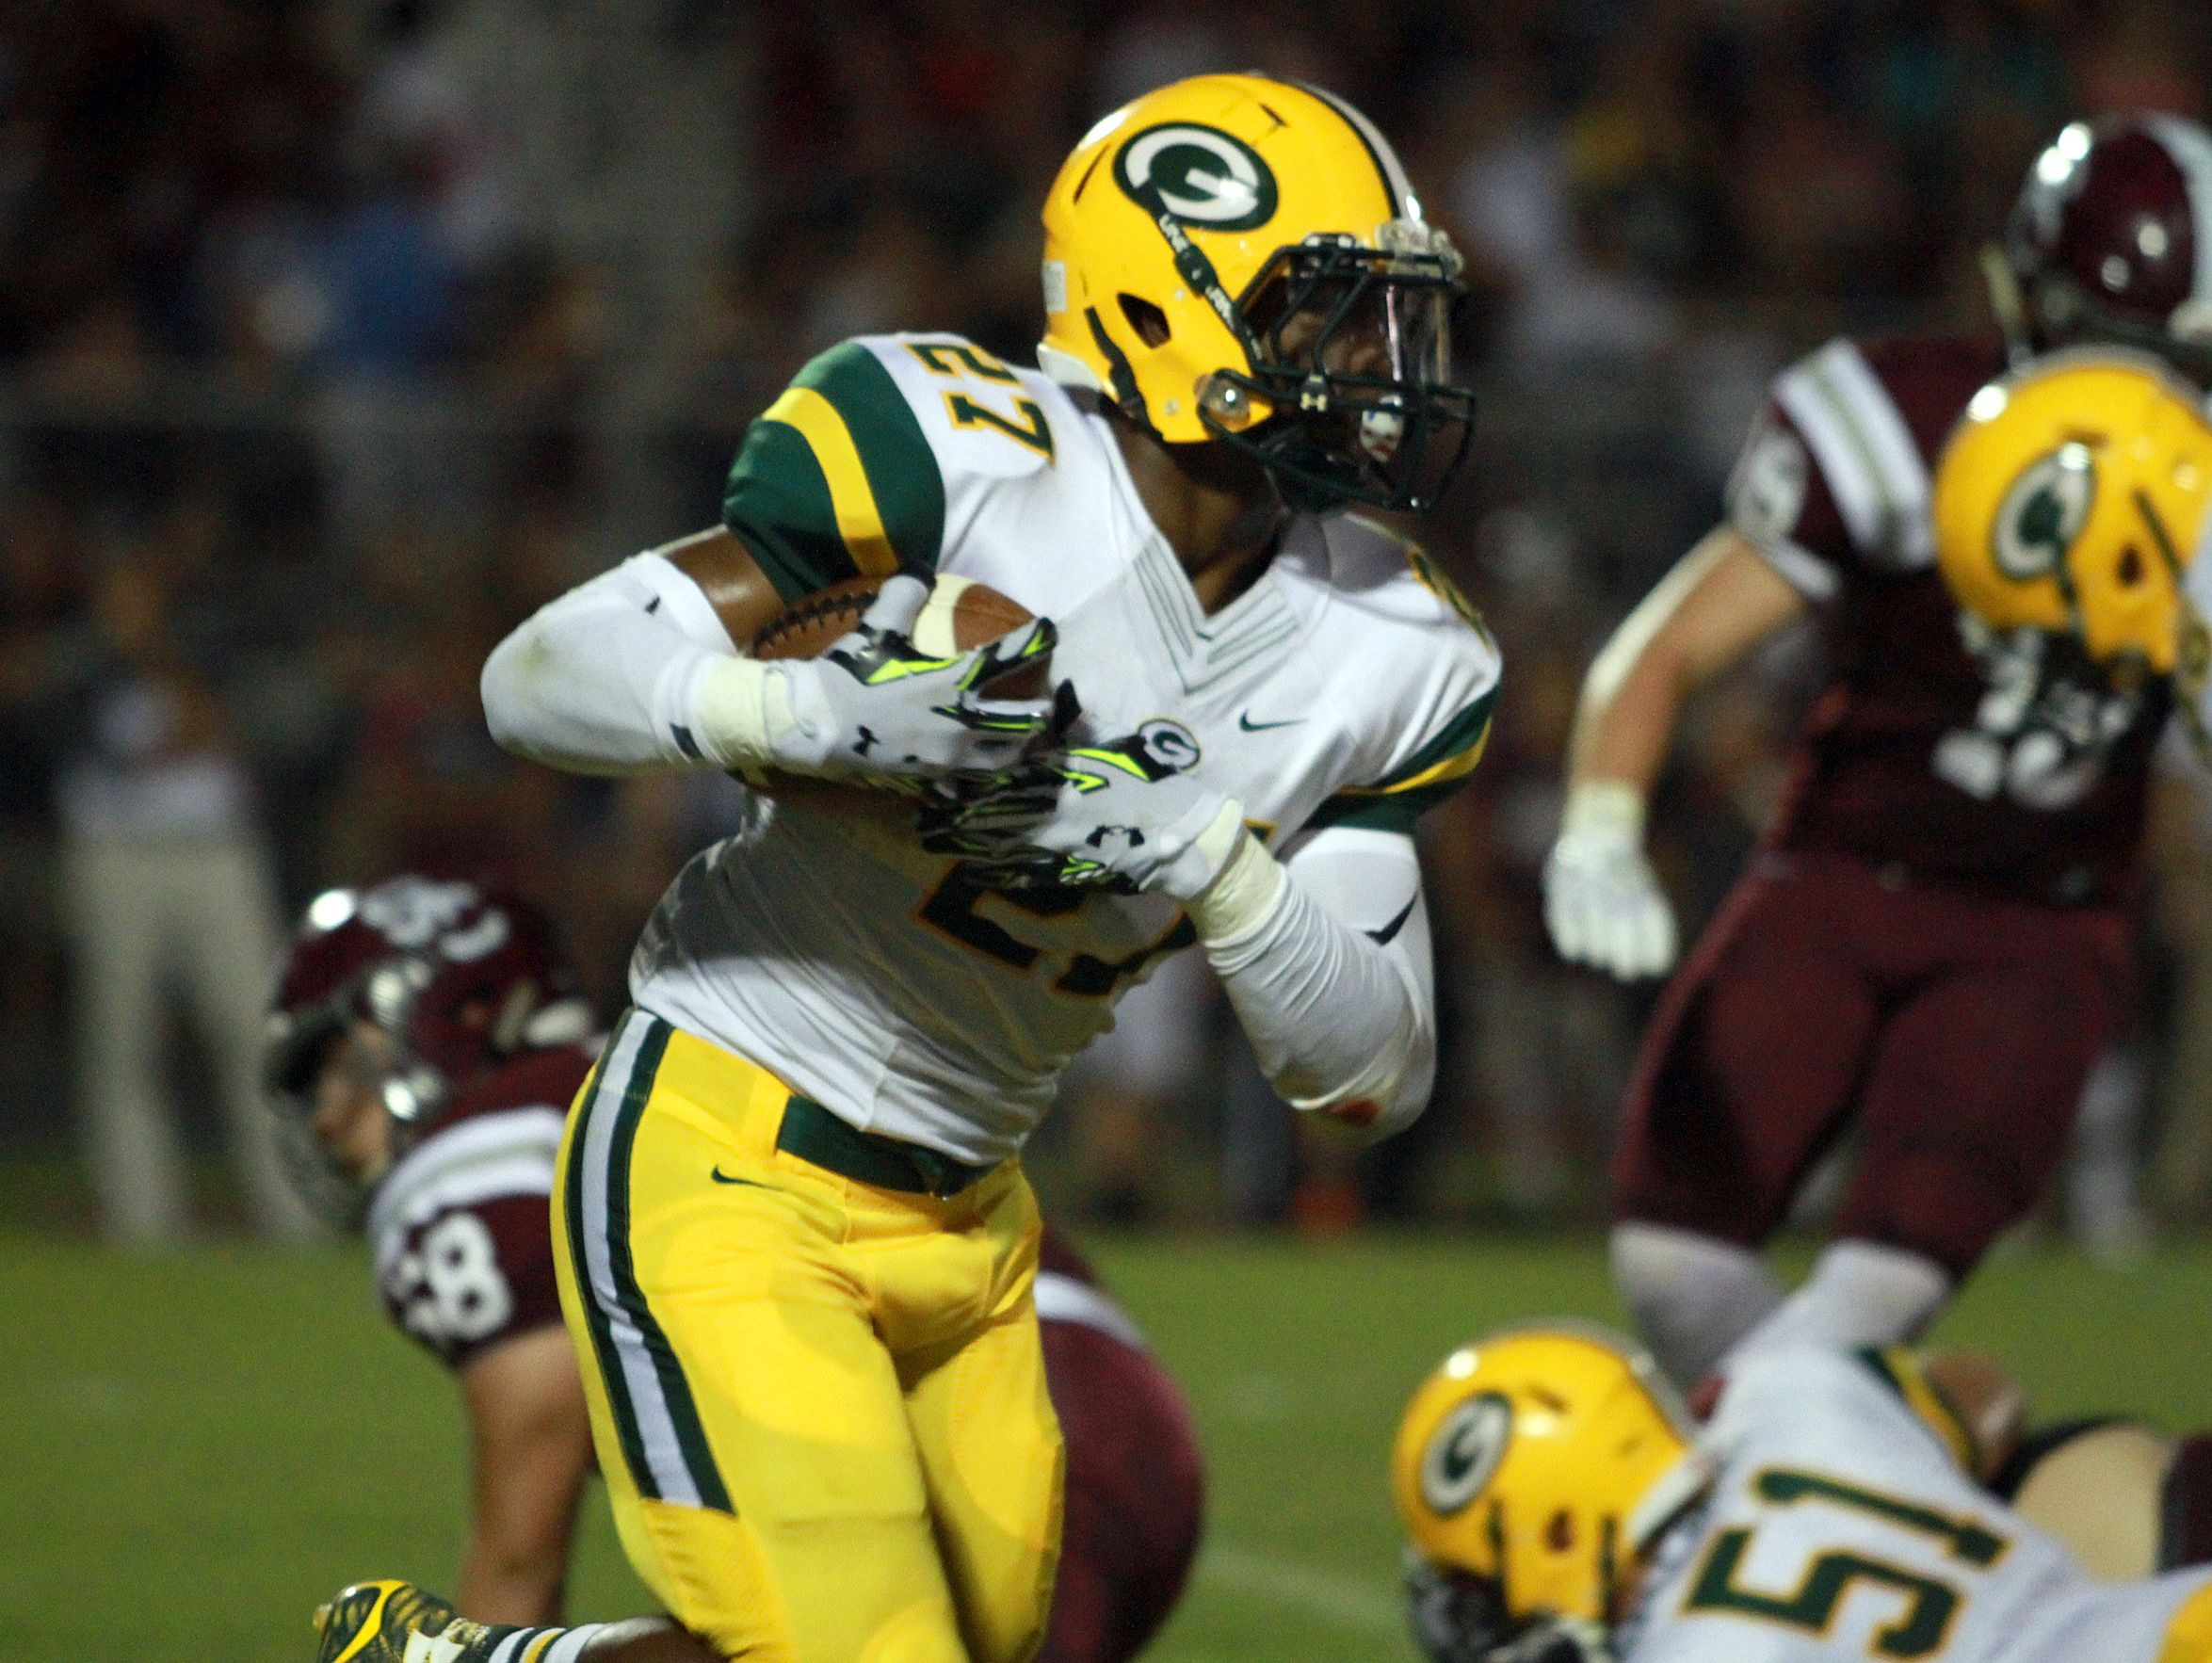 Gallatin running back Jordan Mason rushes against Station Camp during Friday's game. Mason rushed for 298 yards and three touchdowns on 40 carries in the Green Wave's 34-27 victory.